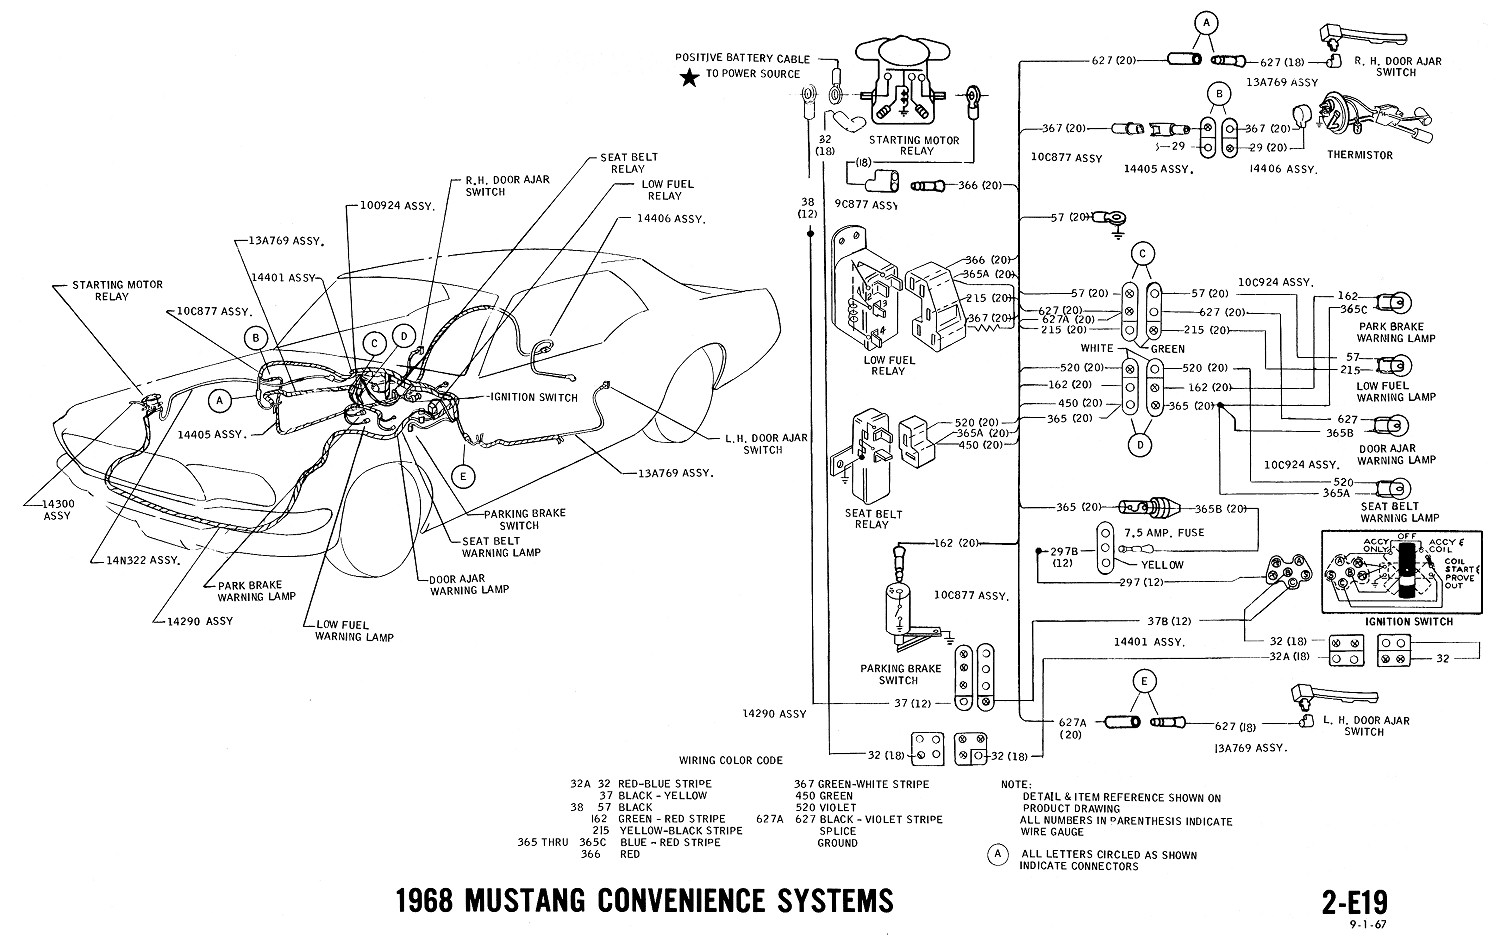 1968 Mustang Wiring Diagrams Evolving Software Marine Switch Panel Diagram Free Picture Convenience Systems